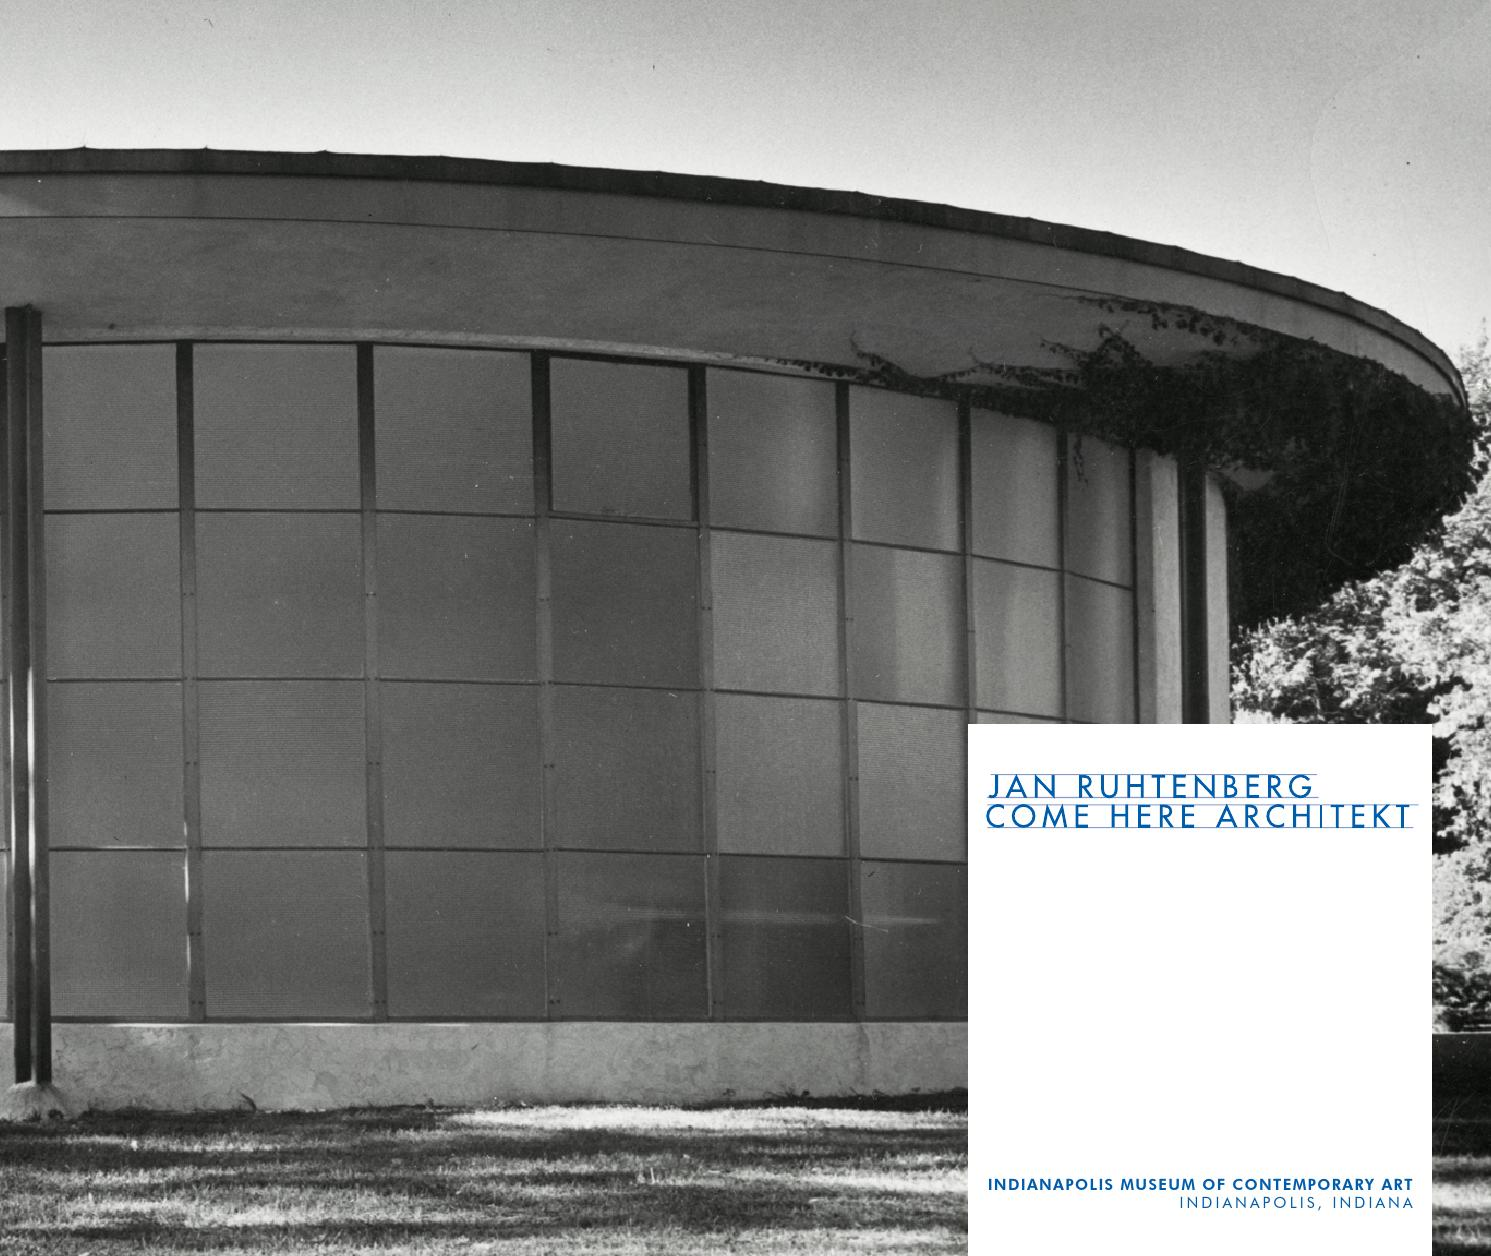 Jan Ruhtenberg Come Here Architekt By Indianapolis Museum